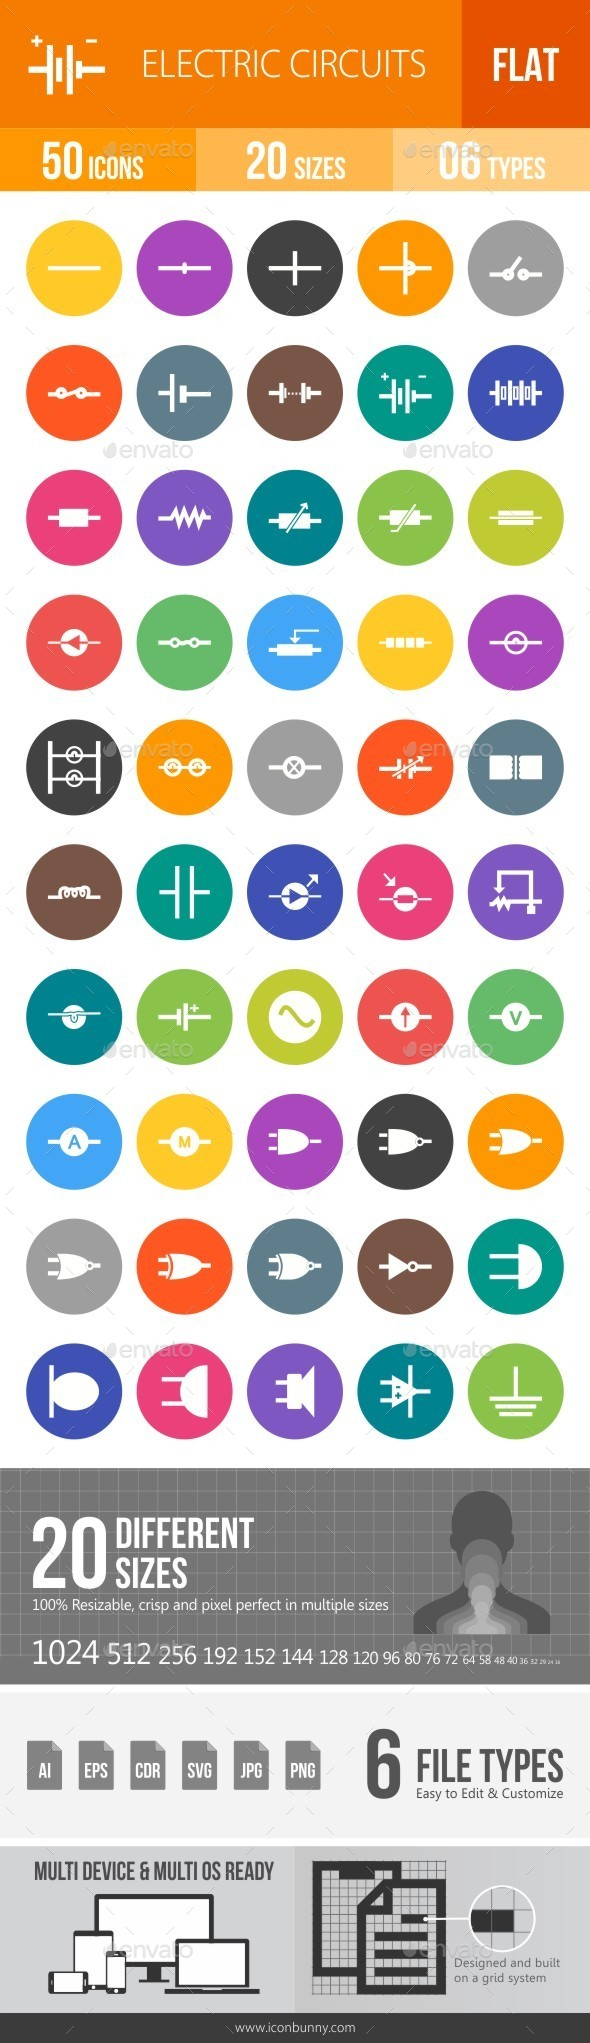 Electric Circuits Flat Round Icons - Icons